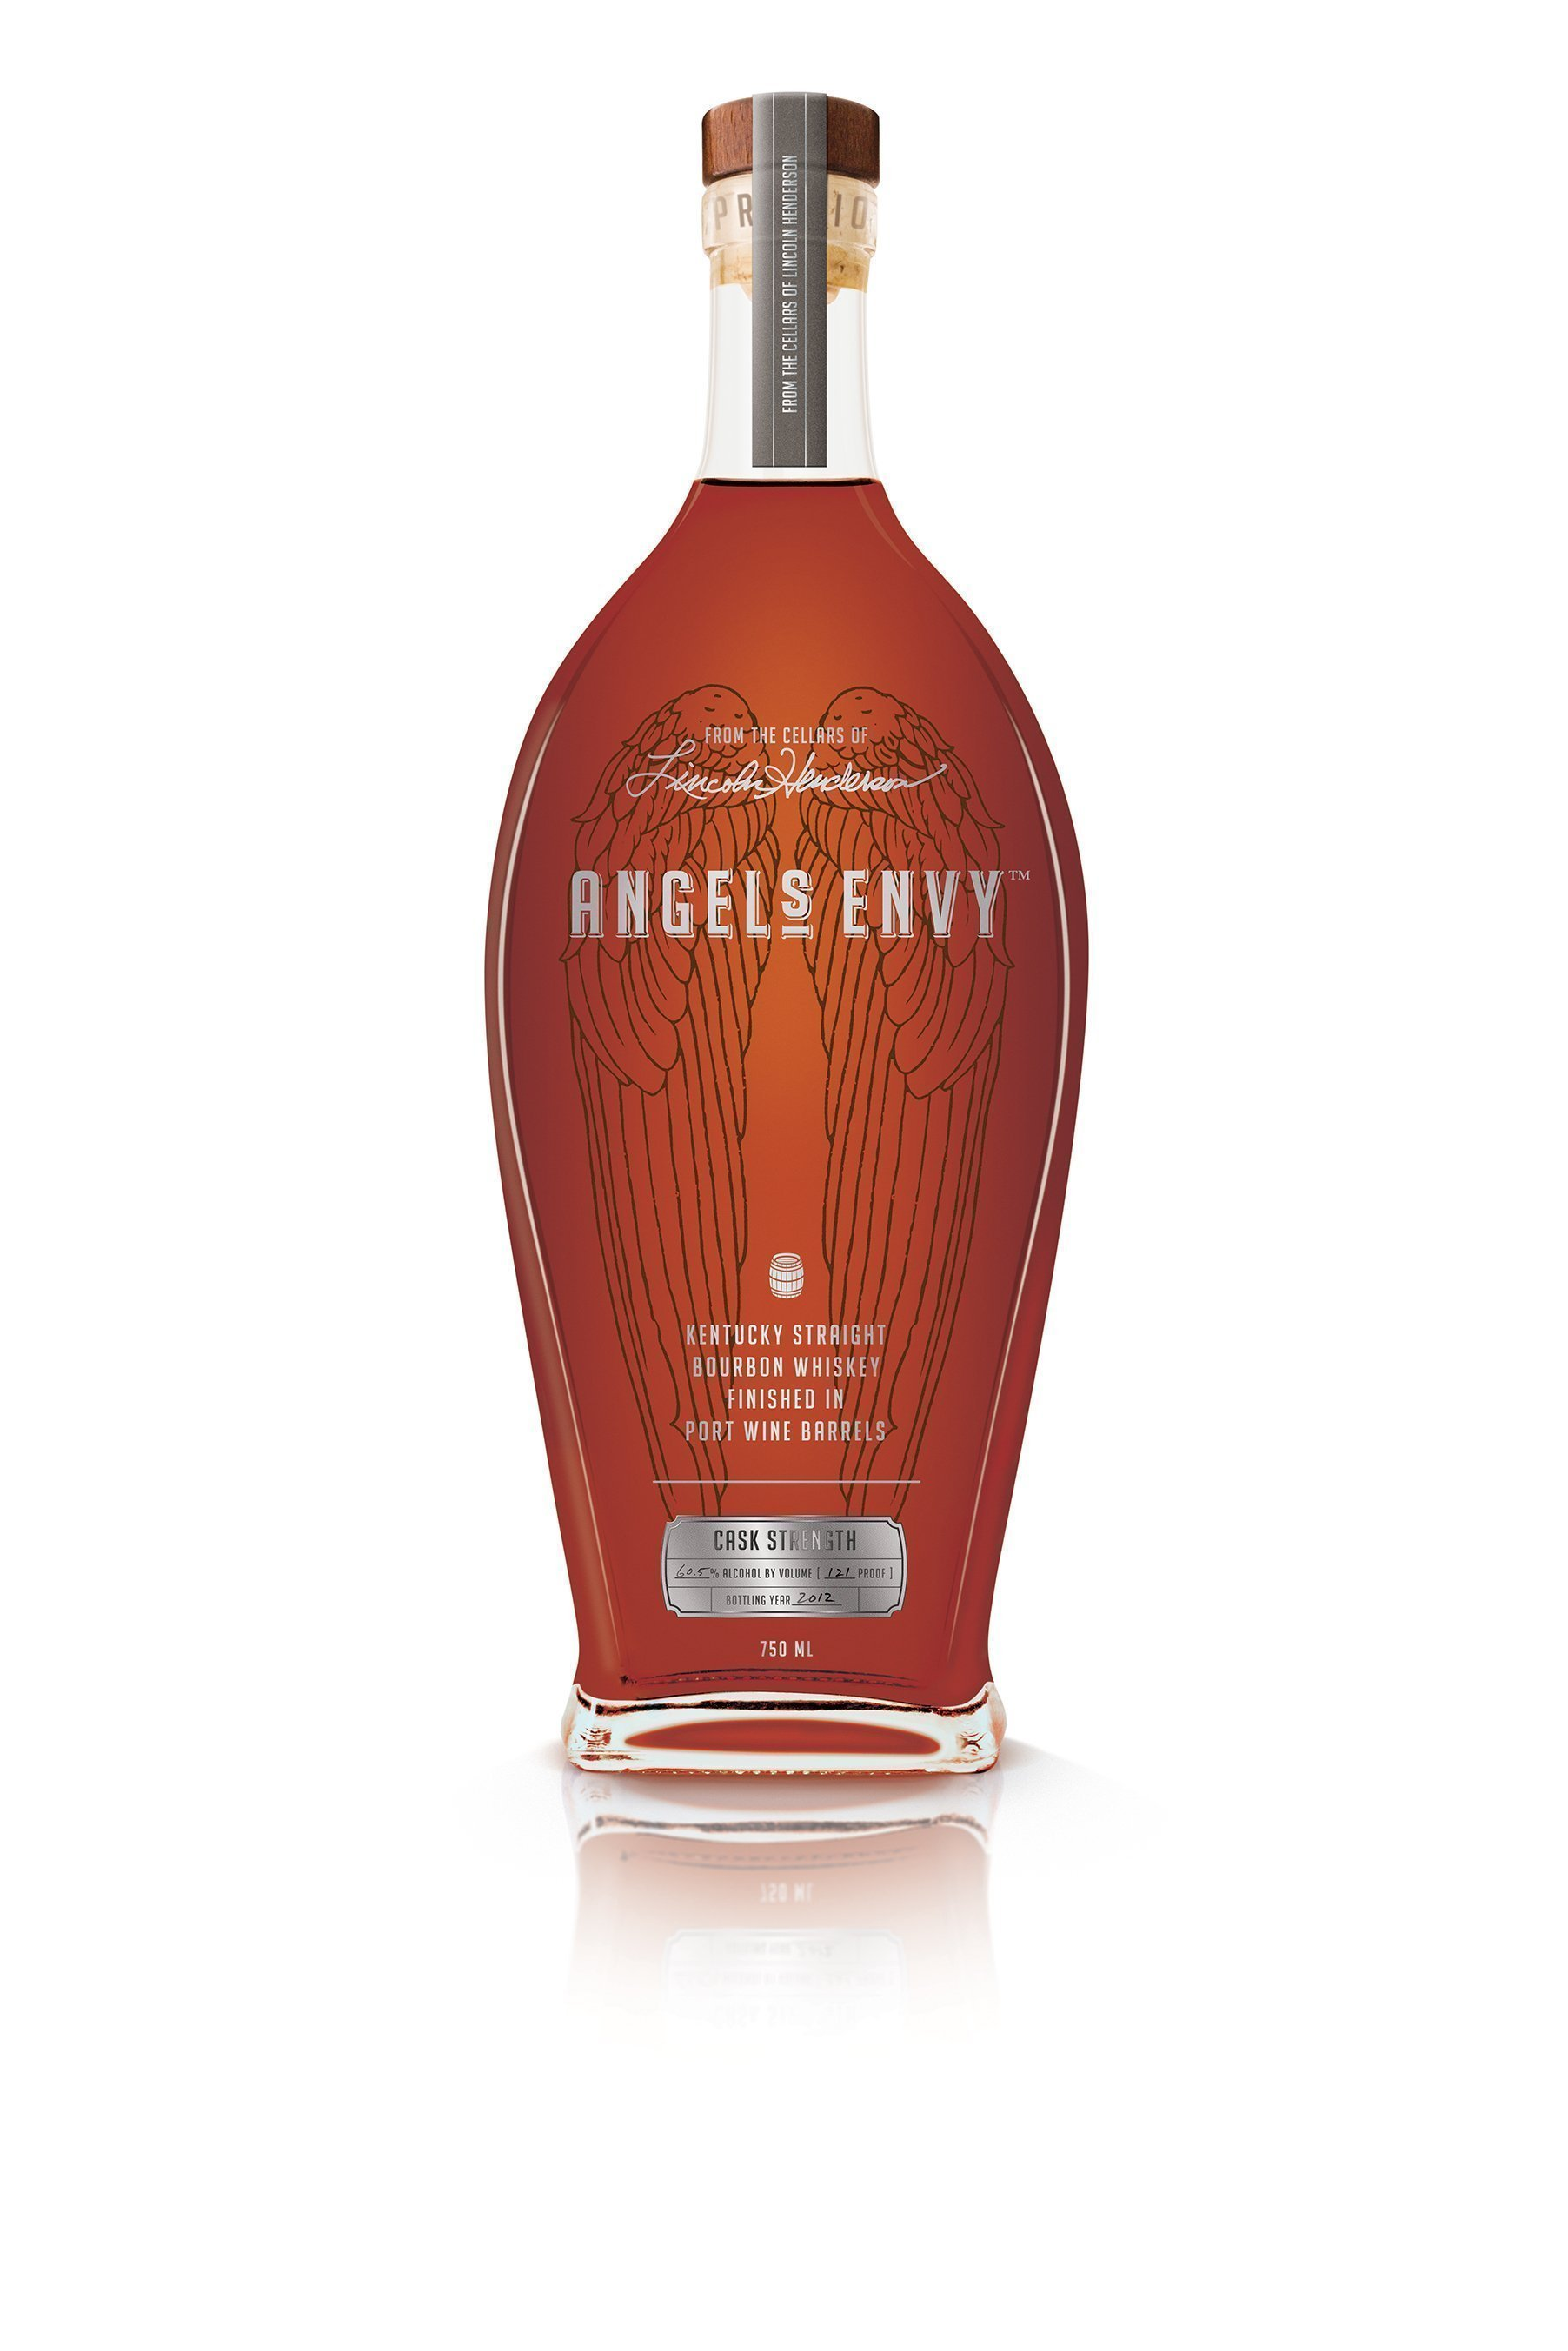 Angel's Envy Cask Strength Bourbon - Limited Edition (2013)